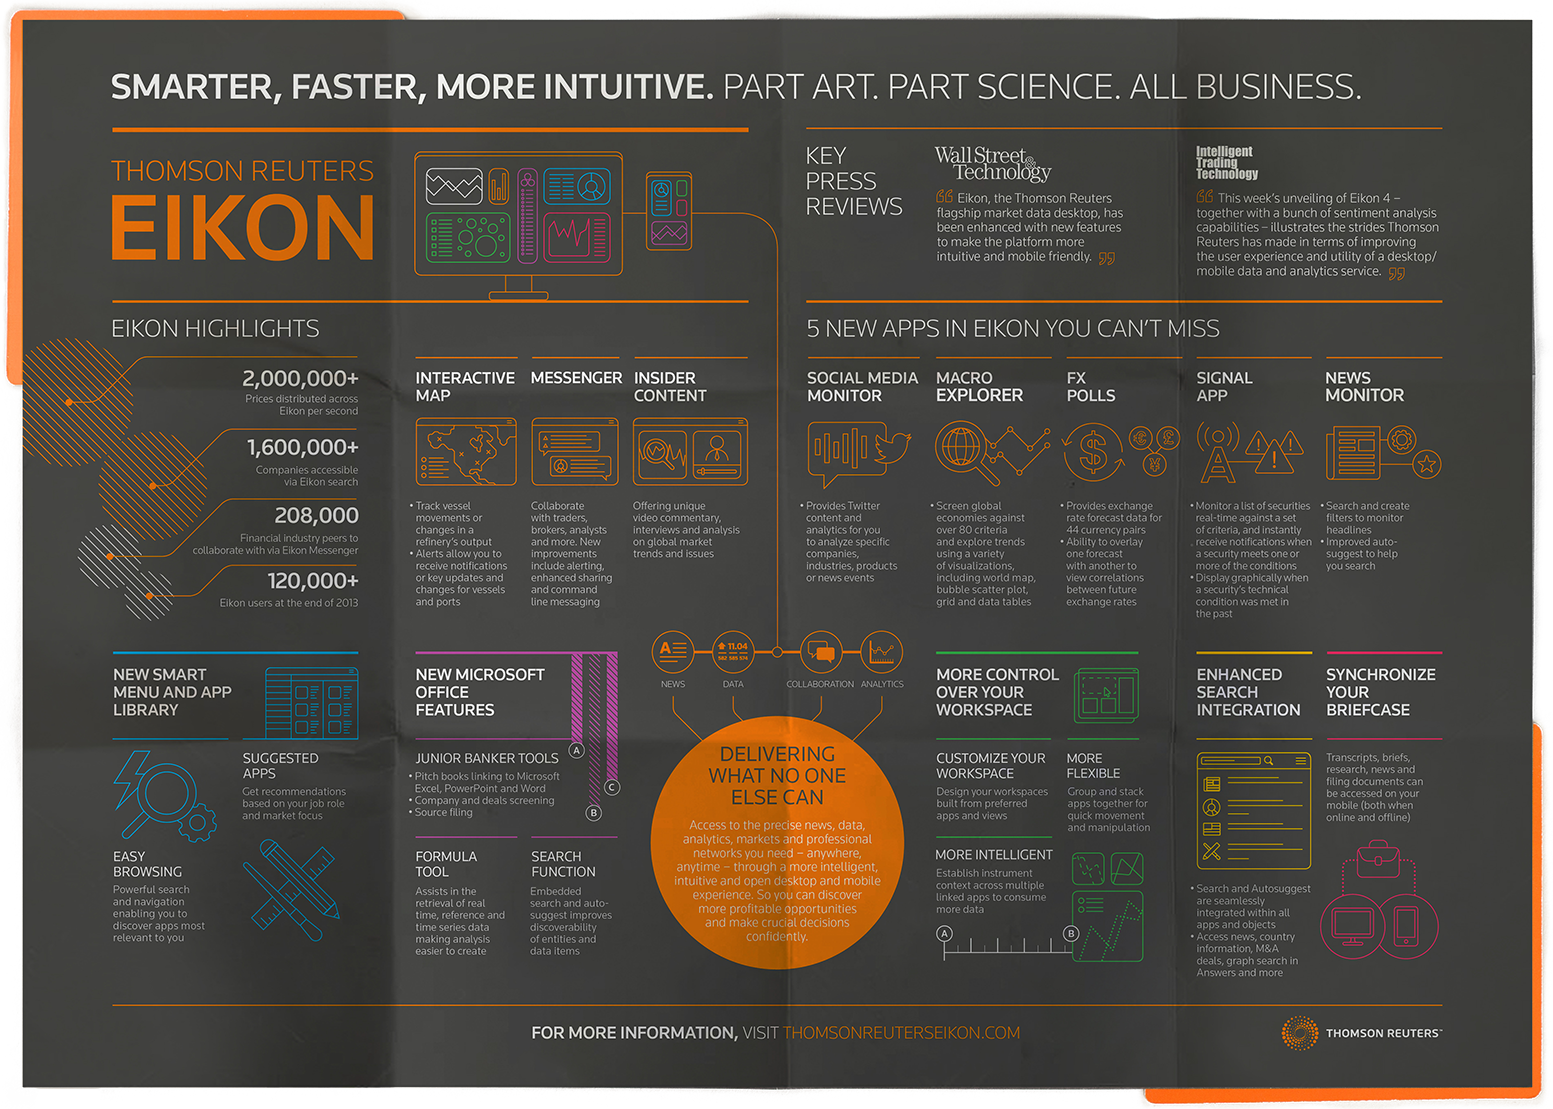 Unfolded-Eikon-Infographic-Second.png